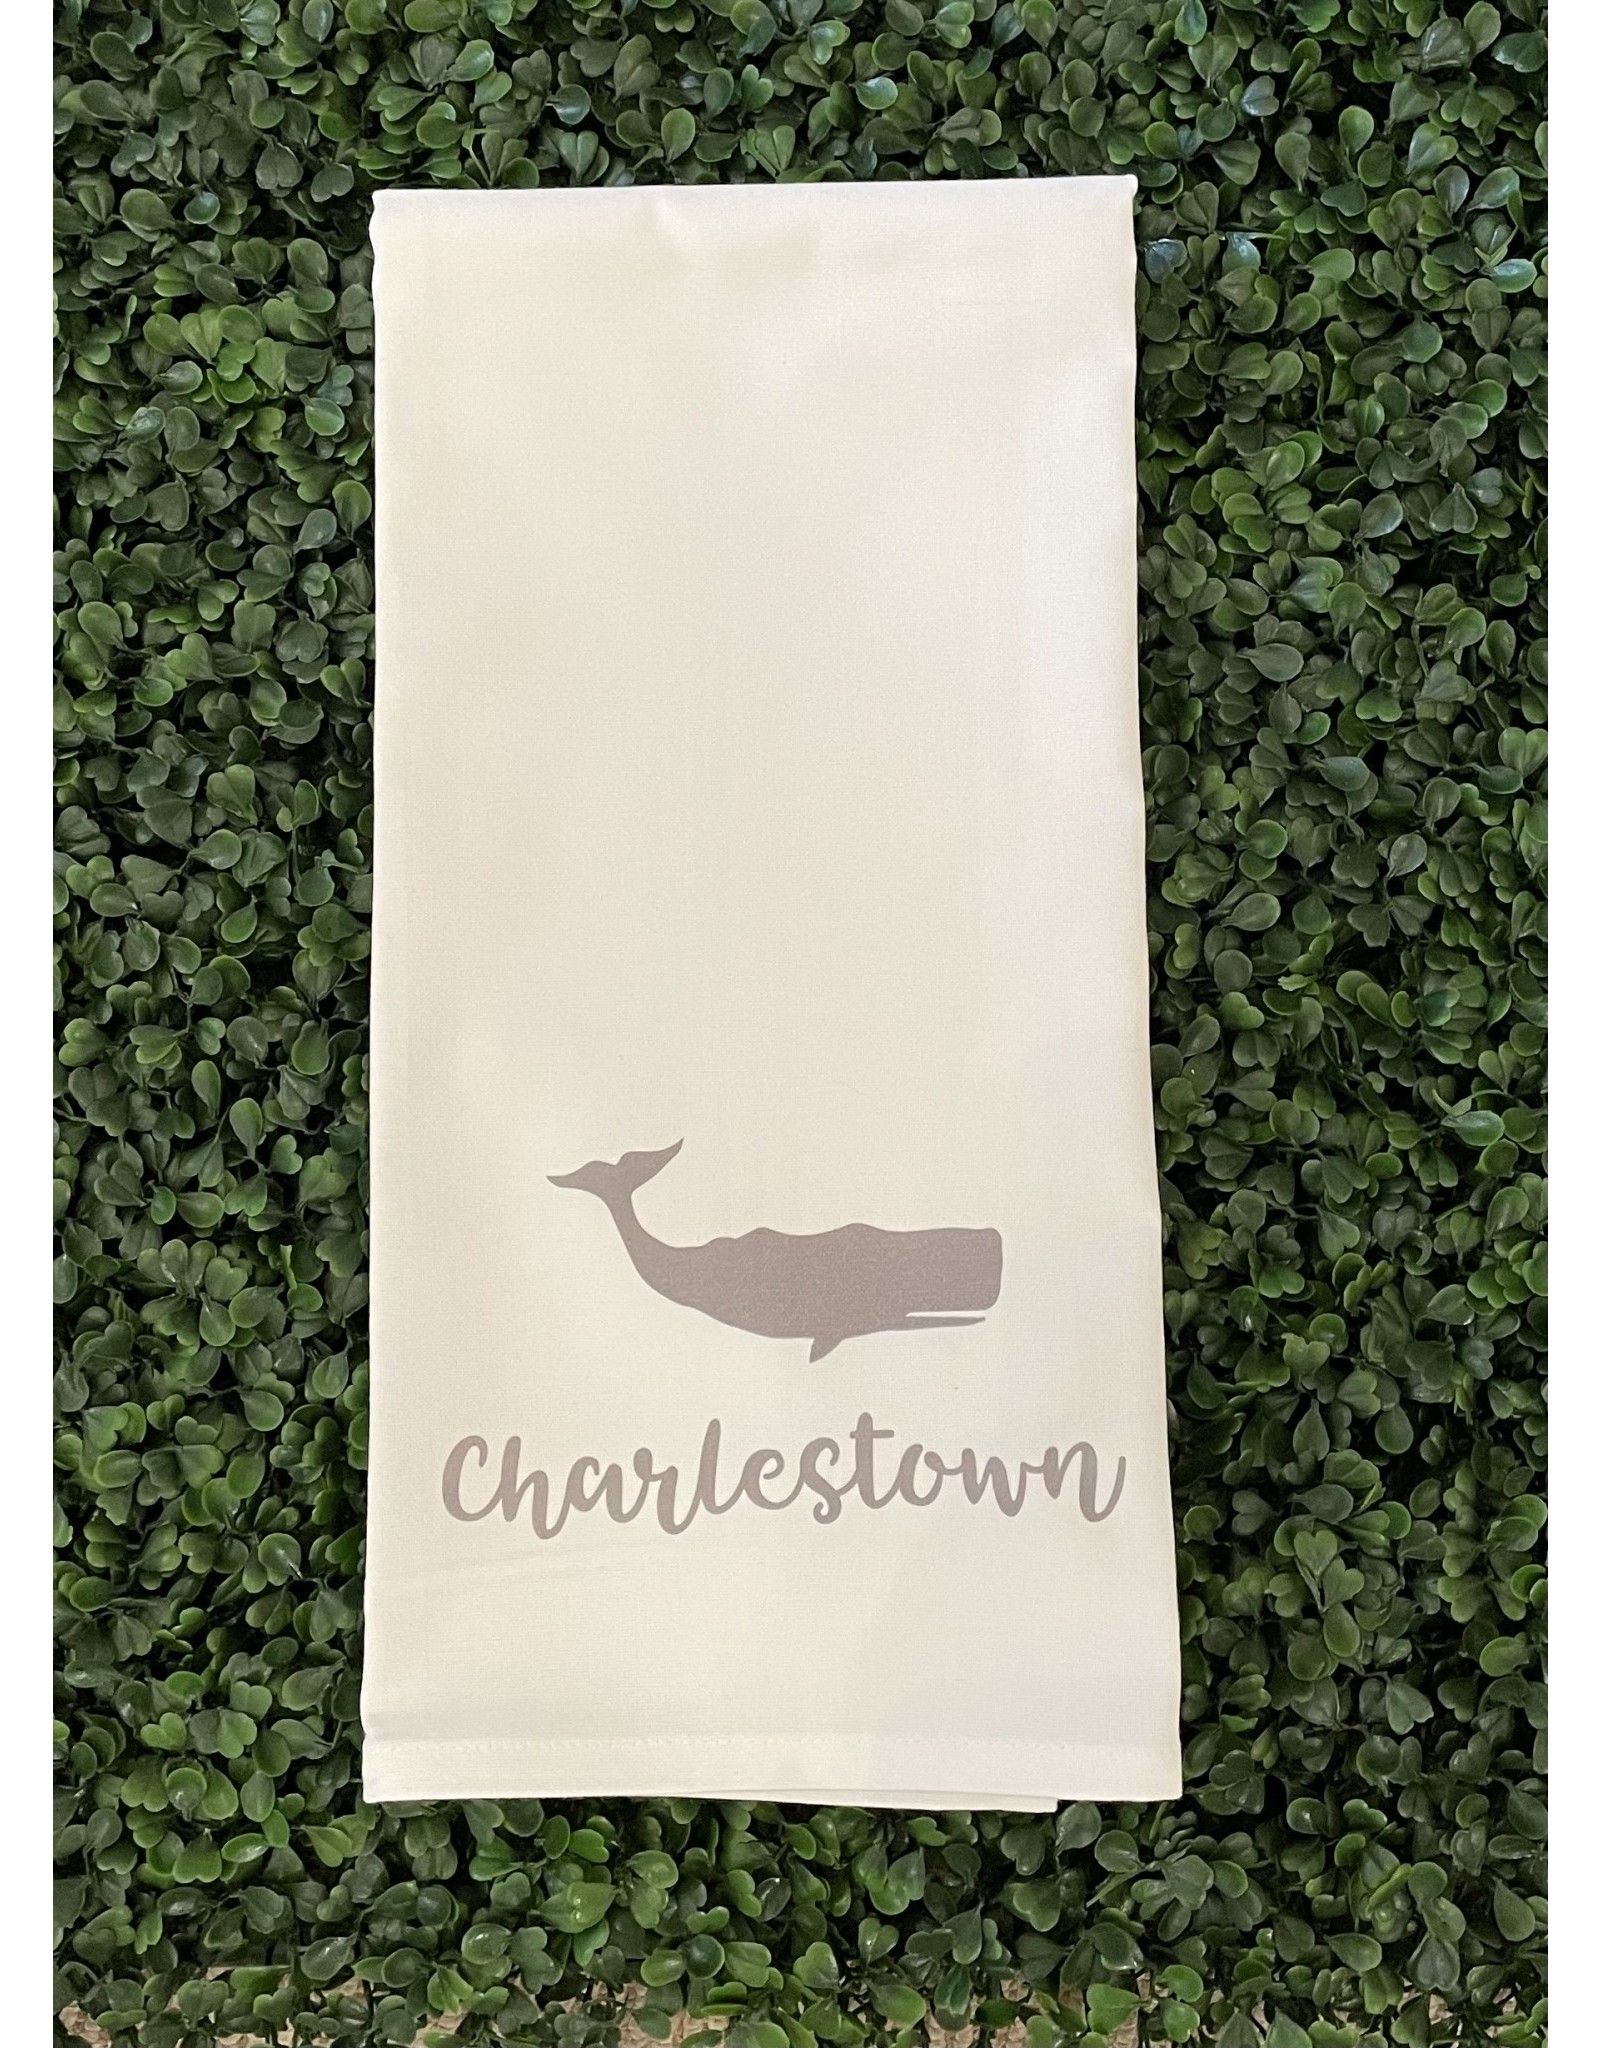 Marshes Fields and Hills Charlestown Whale Tea Towel in Dorian Gray